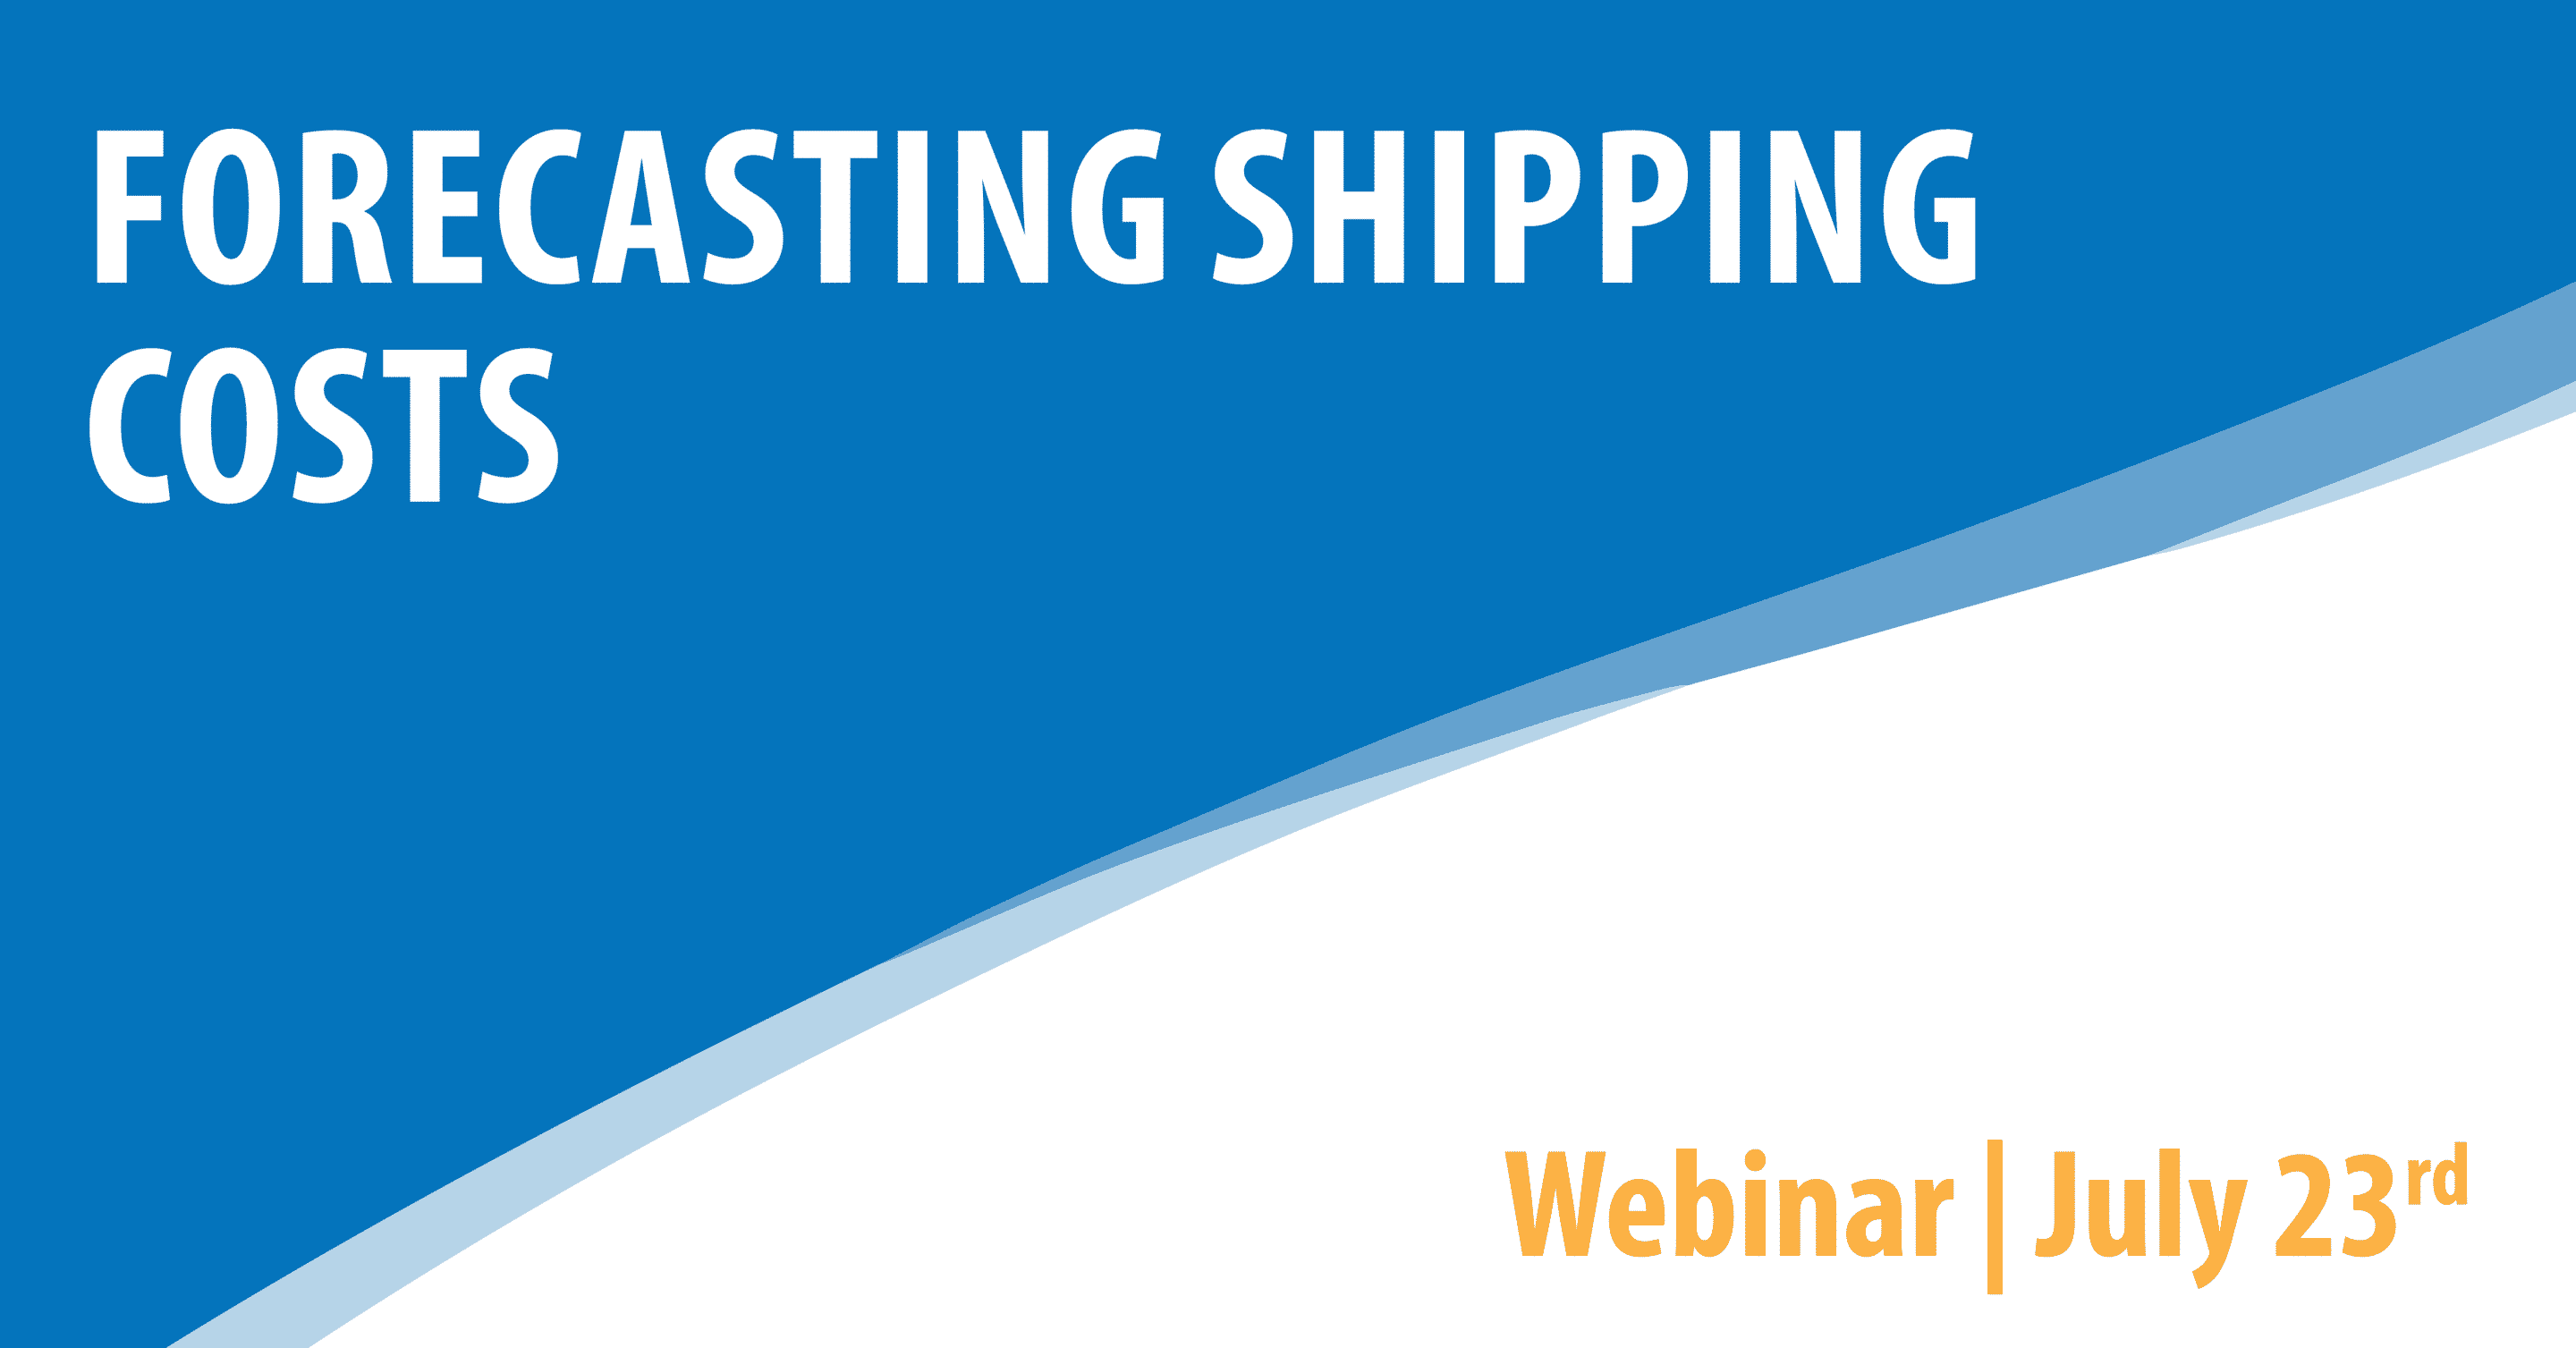 Forecasting Shipping Costs